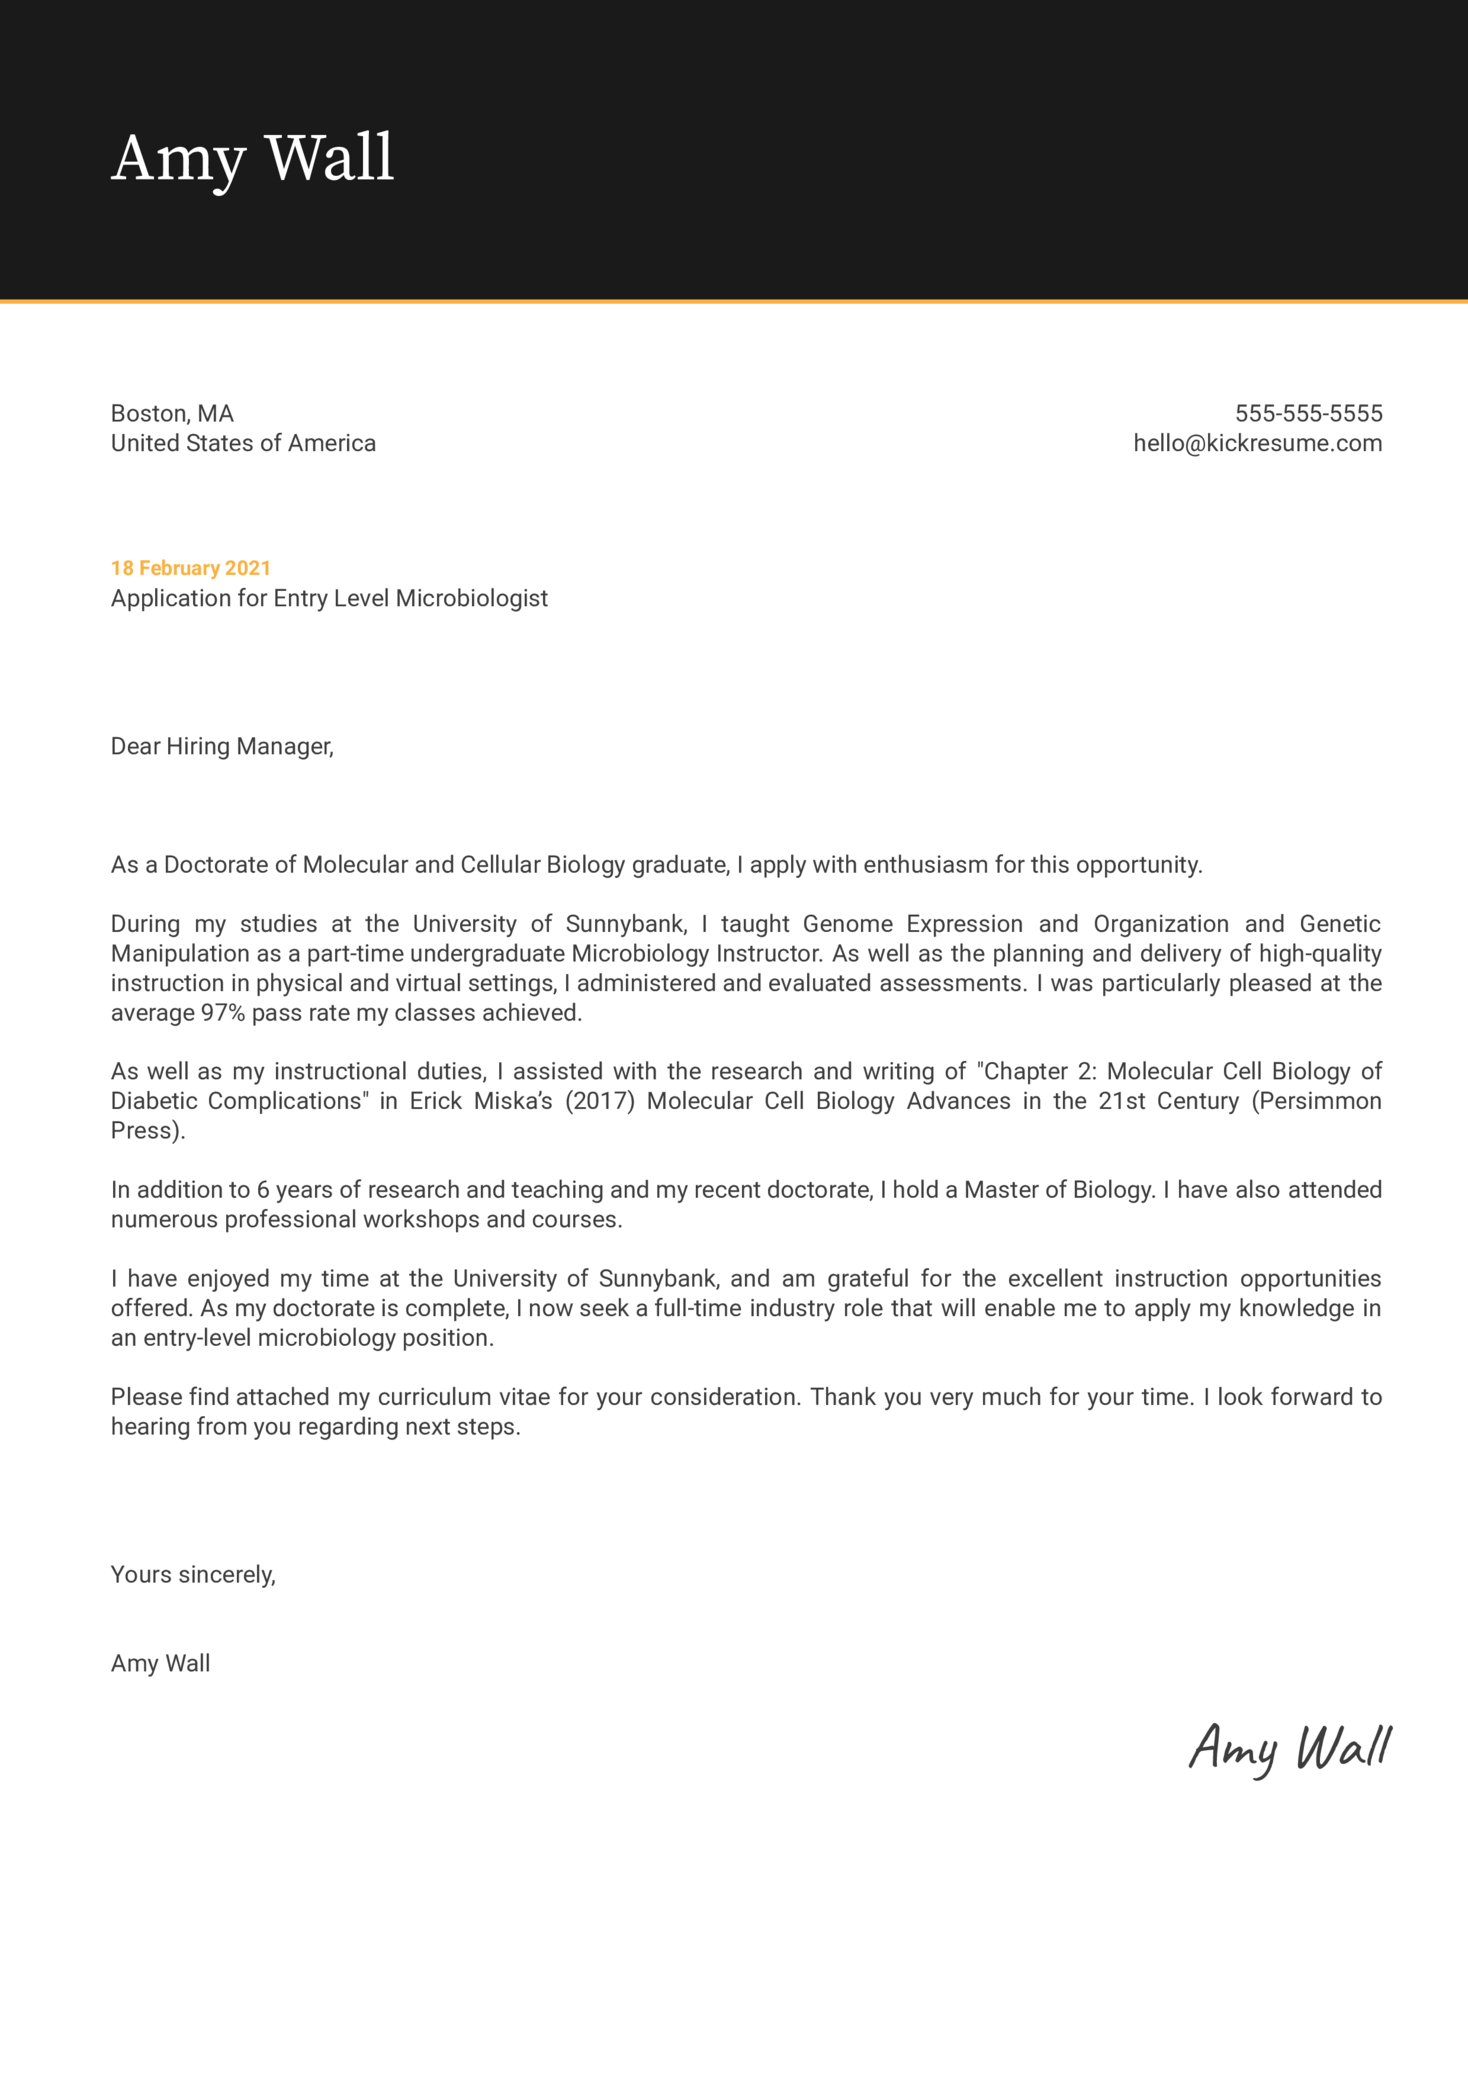 Entry Level Microbiologist Cover Letter Example